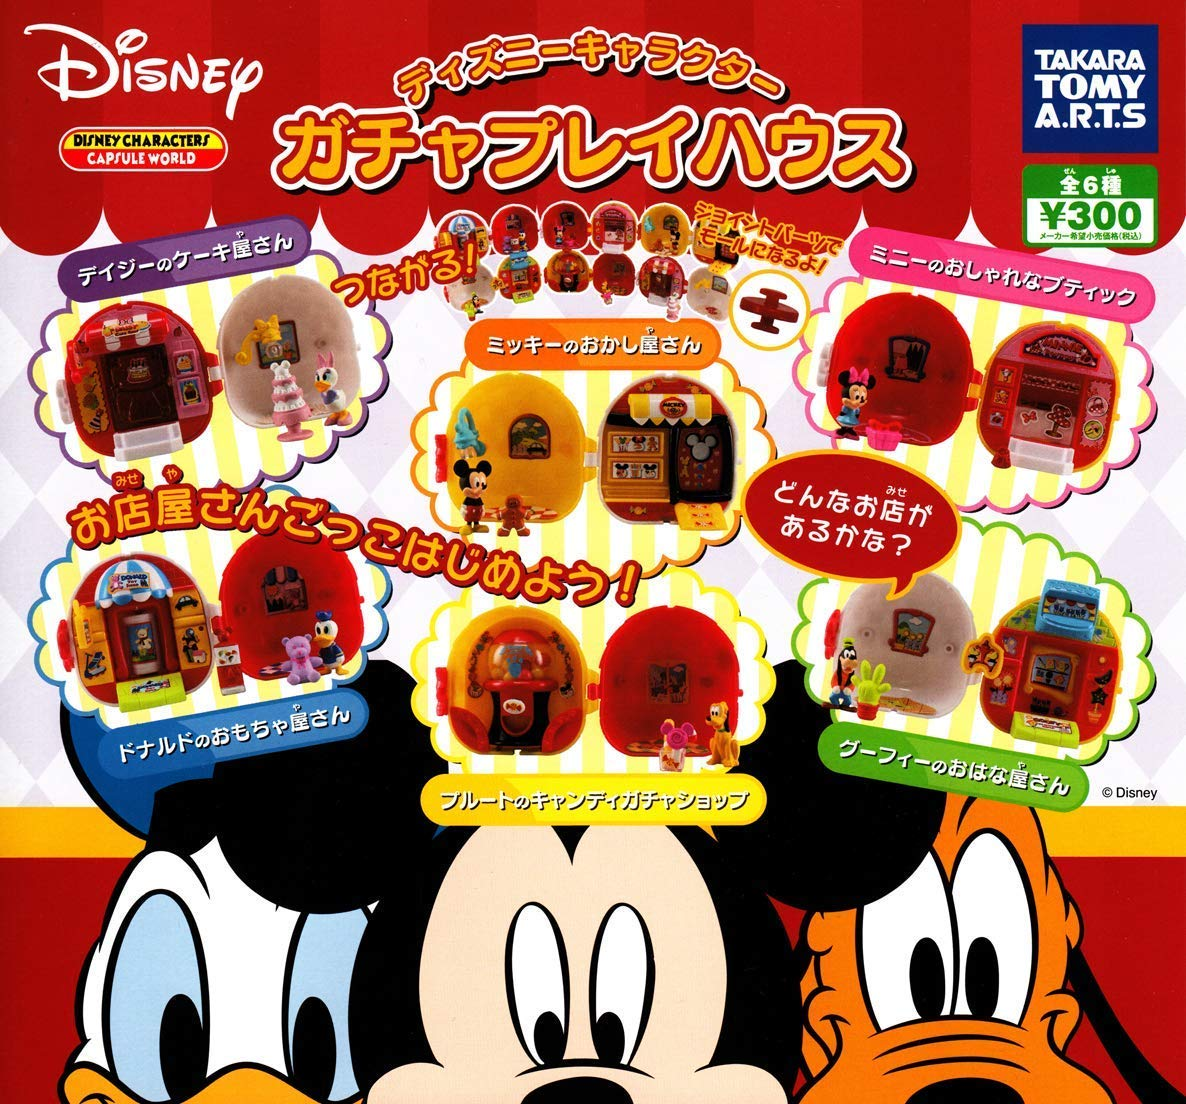 Disney Characters Gacha Playhouse - Complete Set